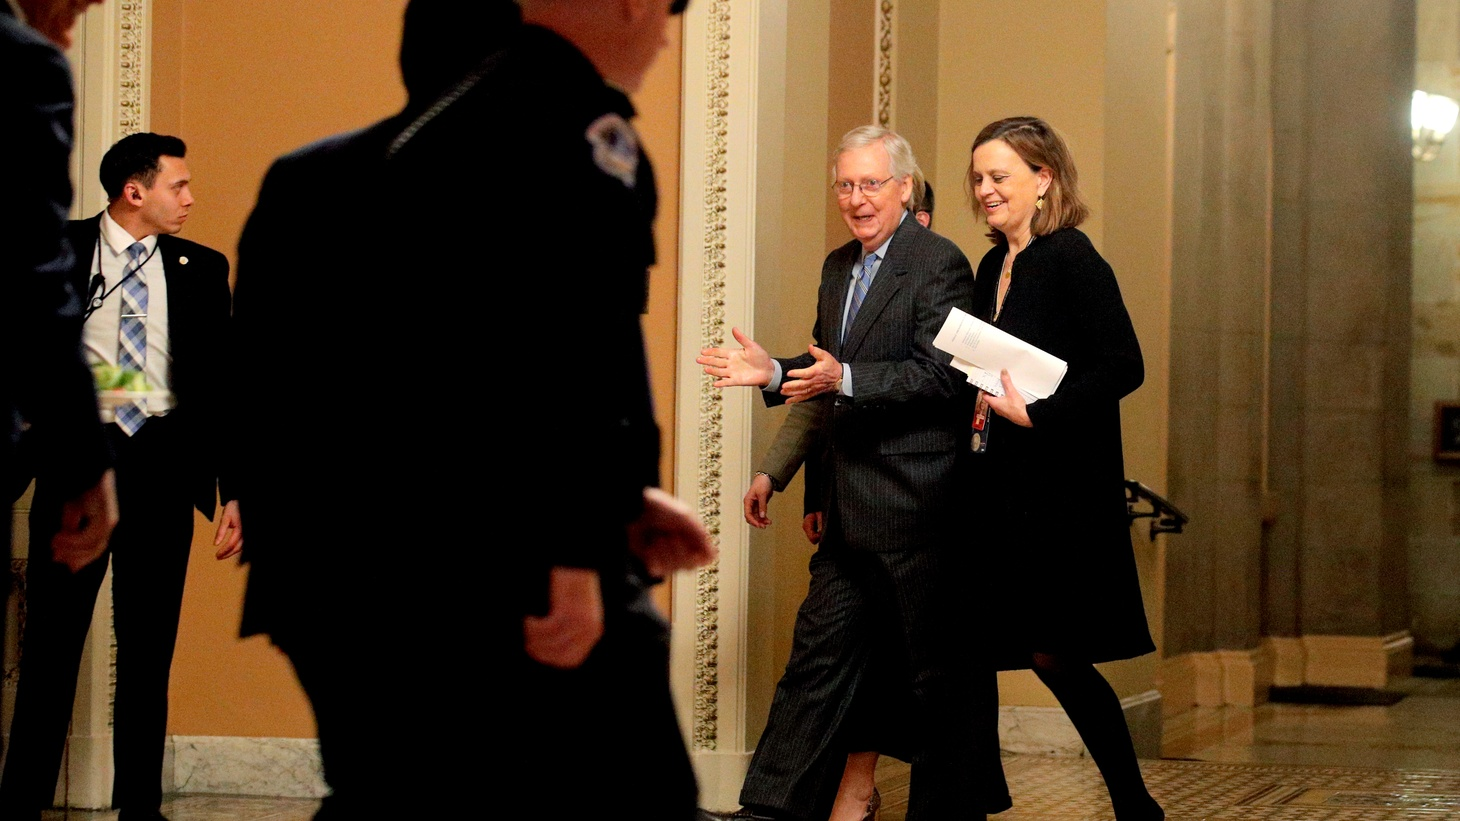 U.S. Senate Majority Leader Mitch McConnell (R-KY) walks during a break in the Senate impeachment trial of U.S. President Donald Trump at the U.S. Capitol in Washington, U.S., January 31, 2020.